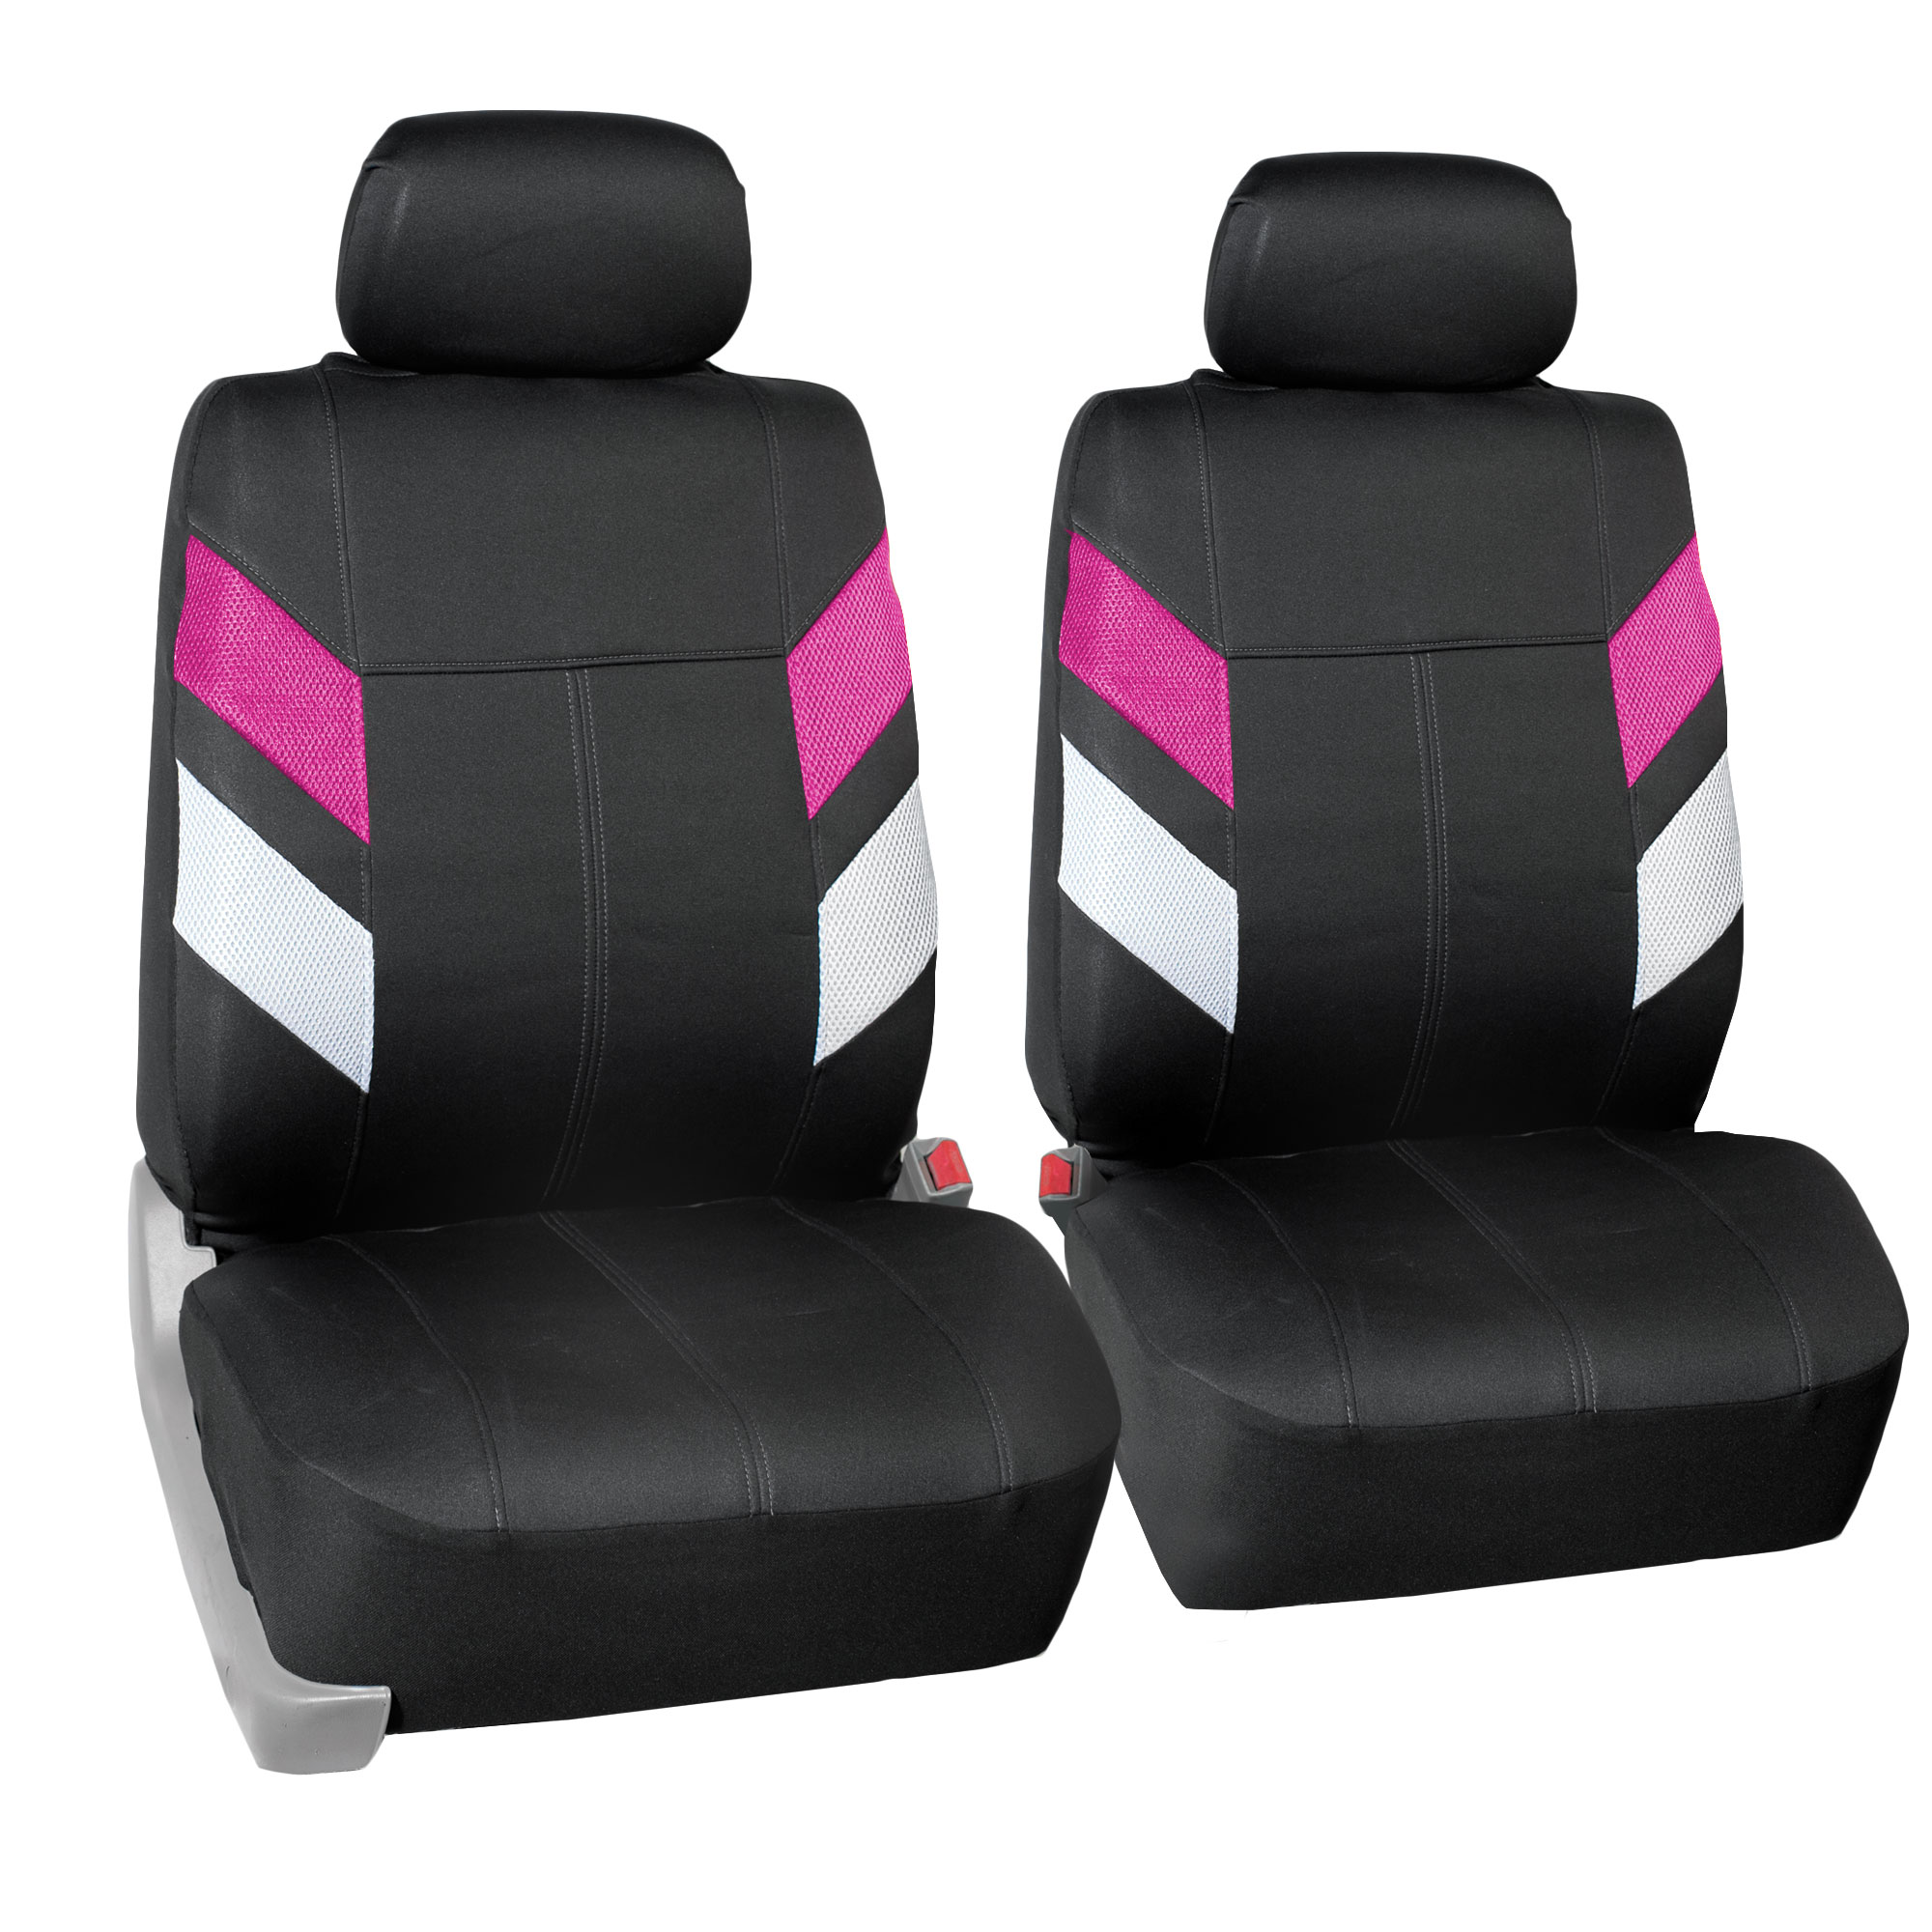 neoprene car seat covers for auto car suv van front bucket 12 colors. Black Bedroom Furniture Sets. Home Design Ideas